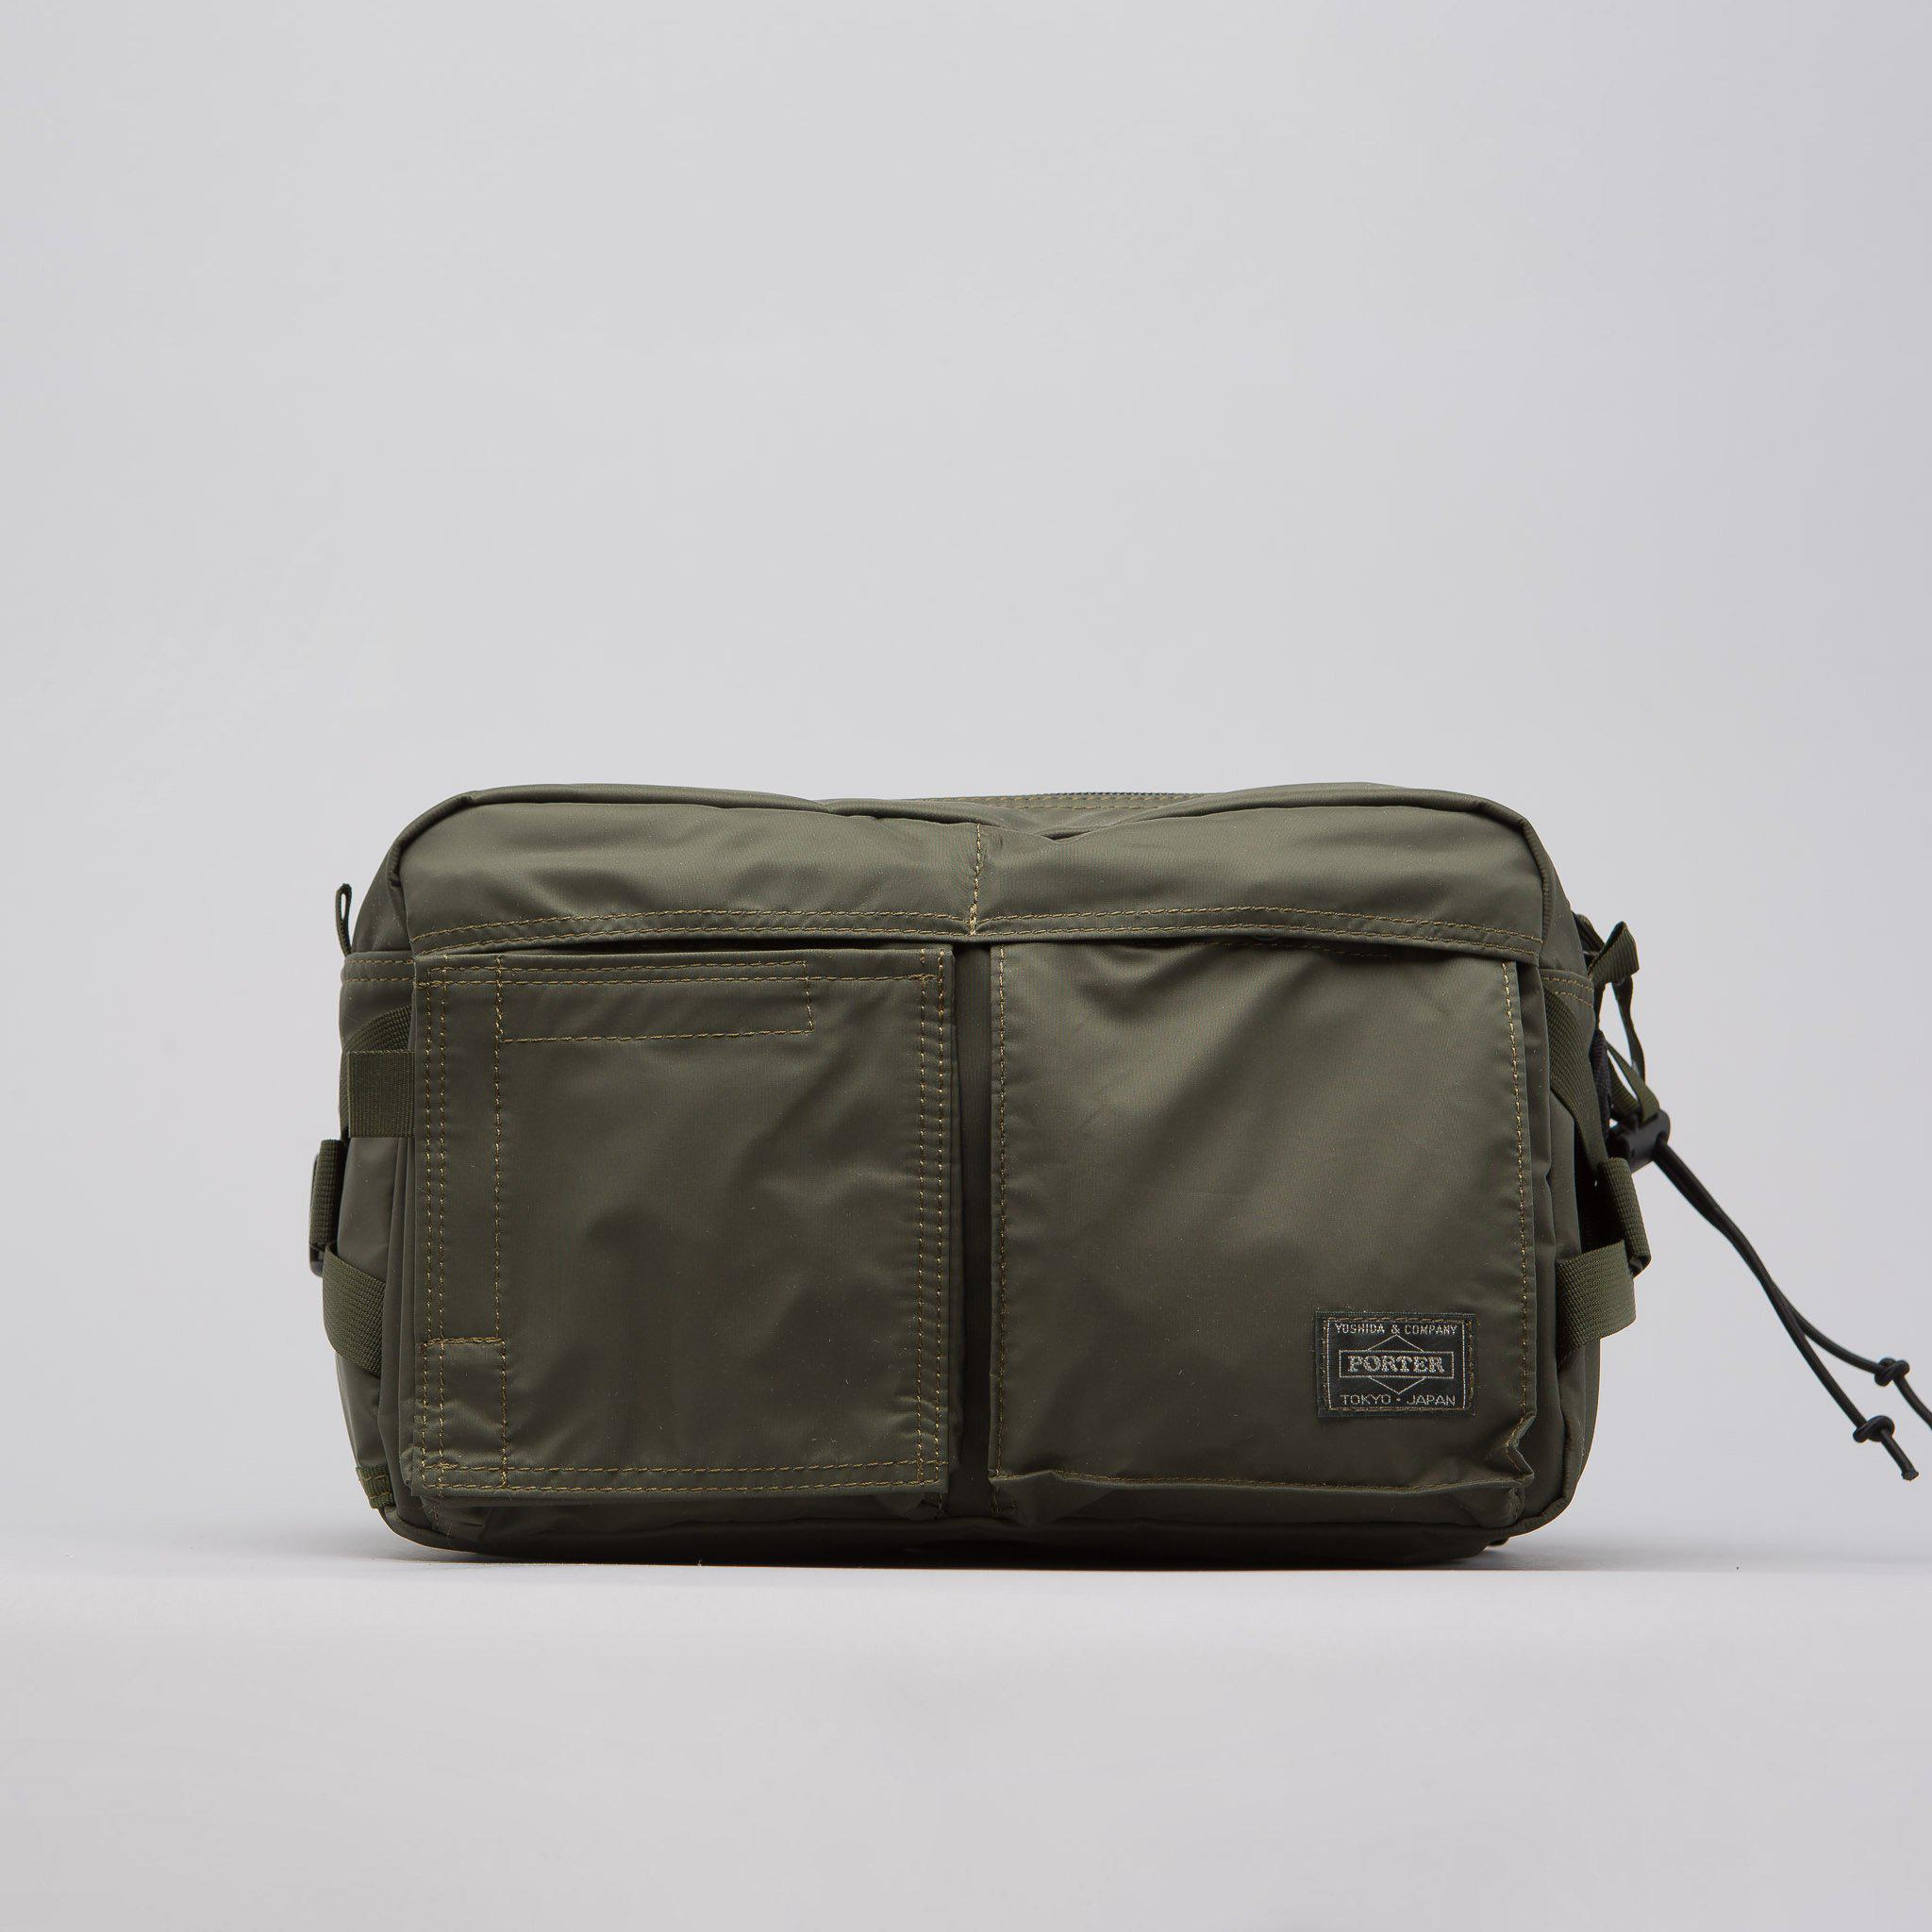 2cc3ac998f4c Lyst - Head Porter New Waist Bag In Olive Drab in Green for Men